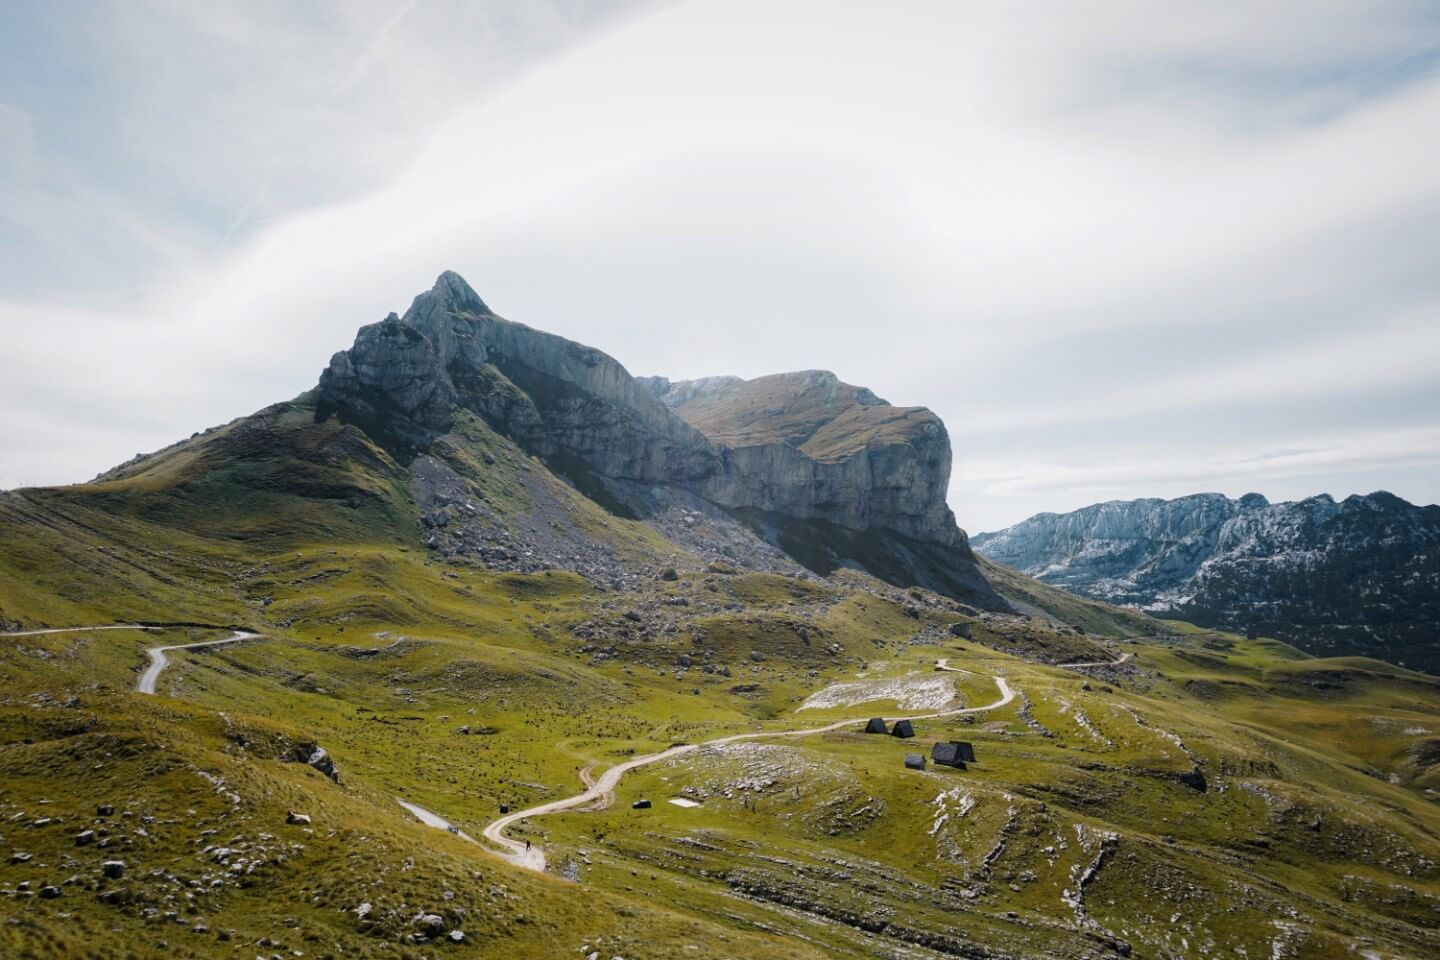 P14 Scenic Mountain Road through Durmitor National Park